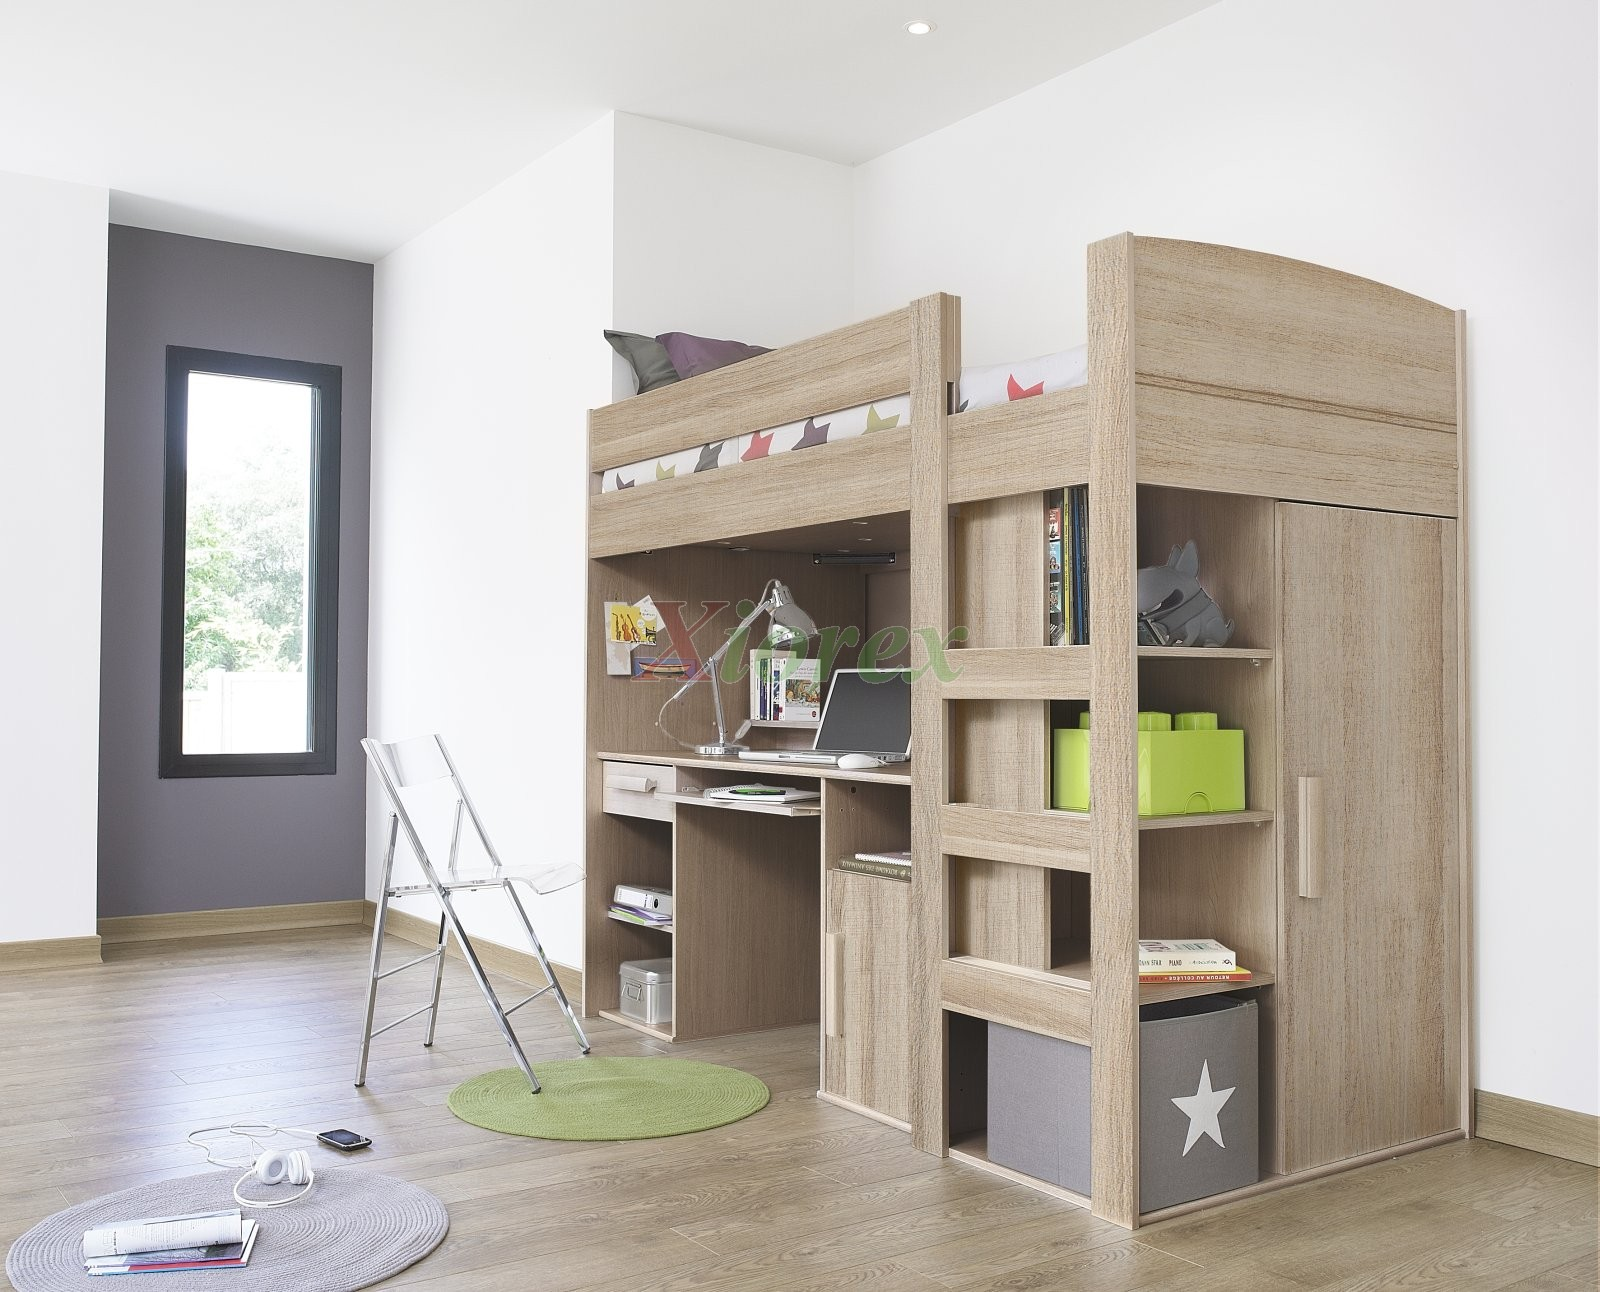 Gami Montana Loft Beds With Desk Closet Storage